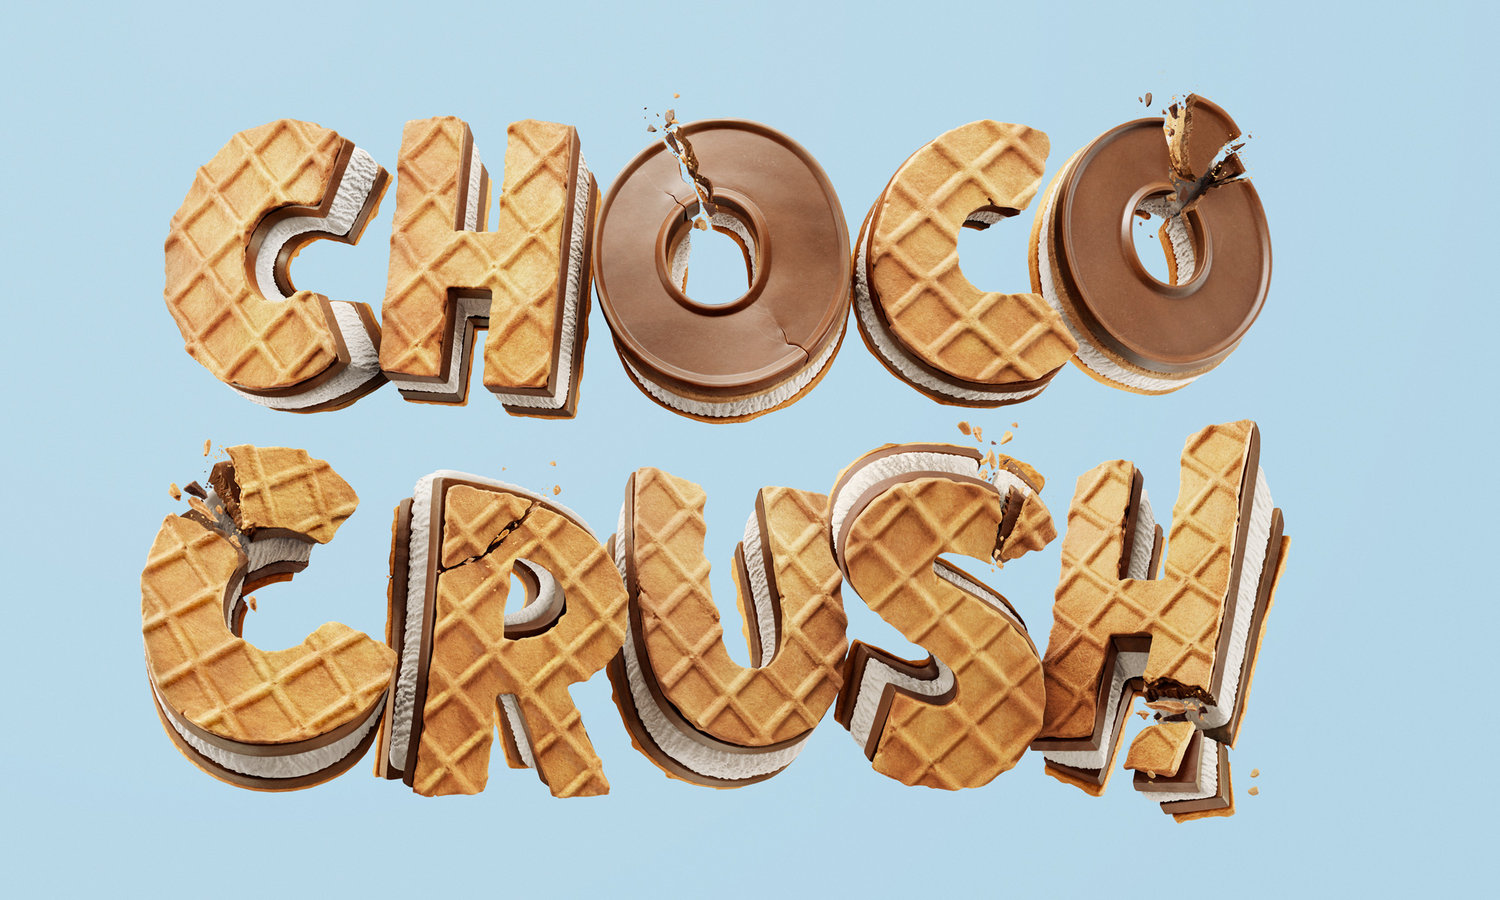 ChocoCrunch